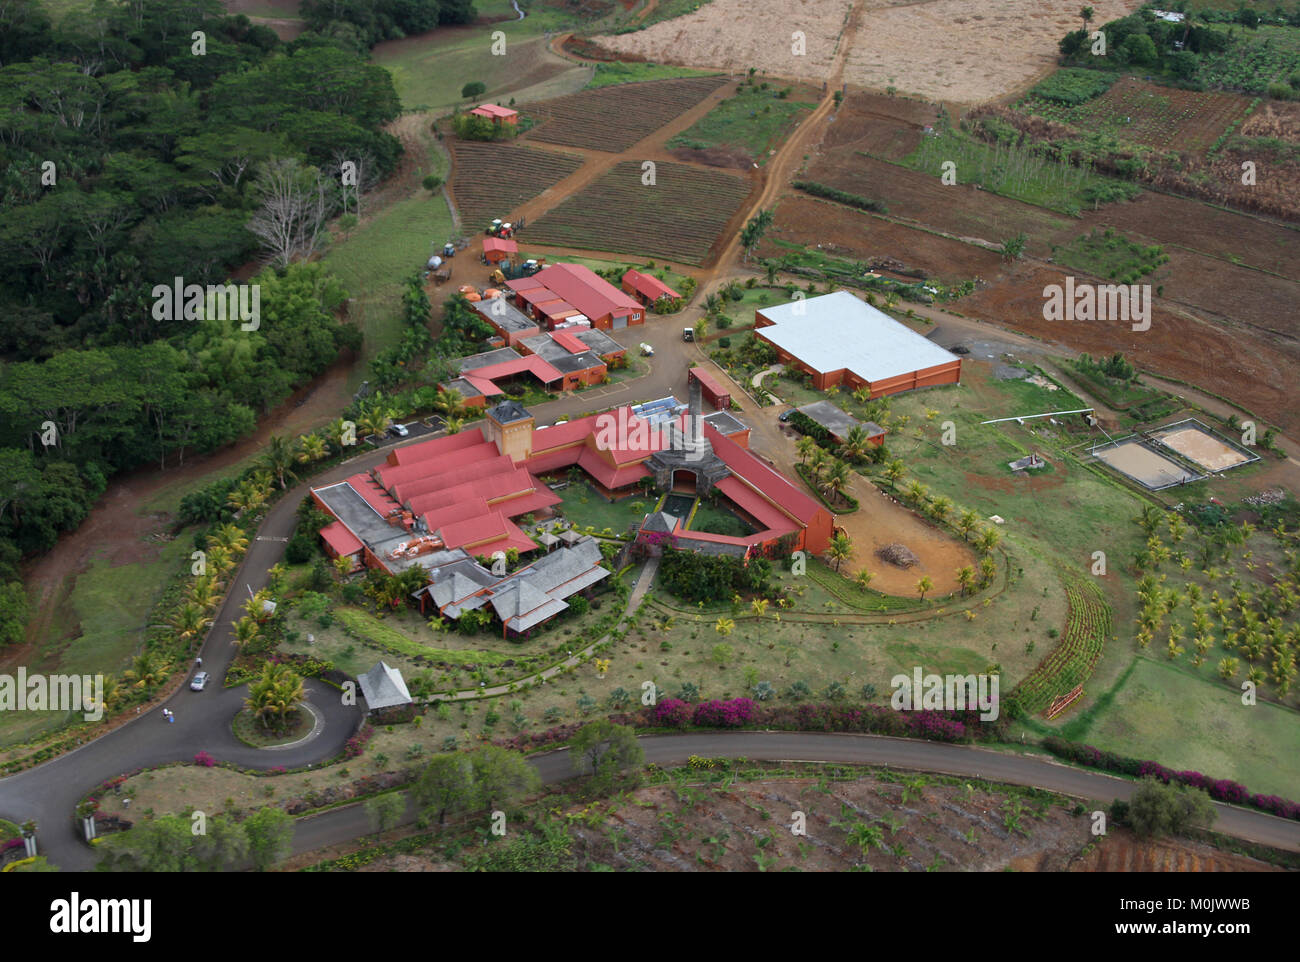 Agricultural factory/refinery, aerial from a helicopter, The Republic of Mauritius. Stock Photo